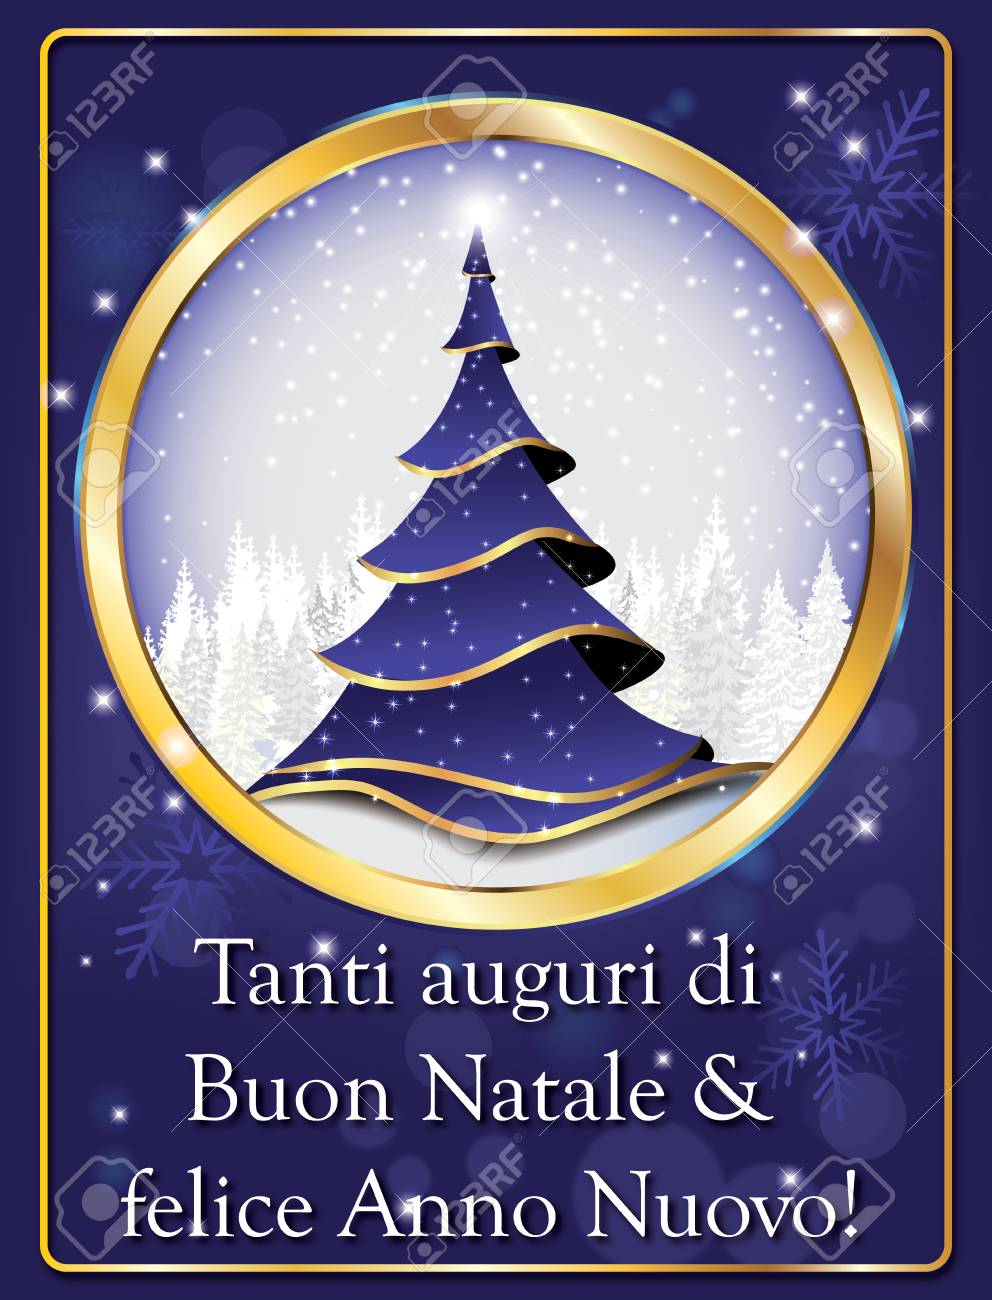 Auguri Di Buon Natale Merry Christmas.Italian Lovely Greeting Card For Winter Holiday Merry Christmas